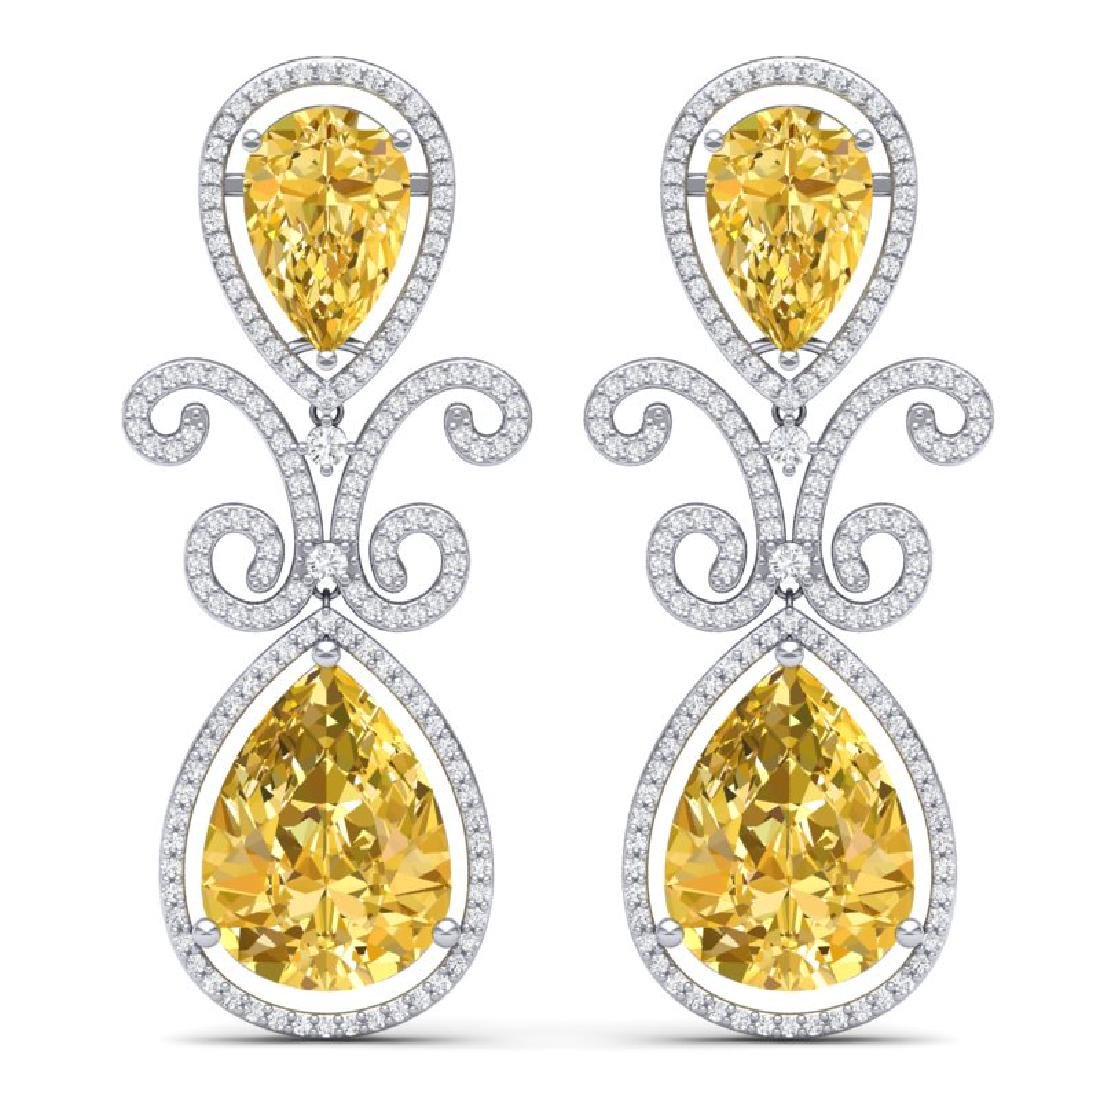 27.31 CTW Royalty Canary Citrine & VS Diamond Earrings